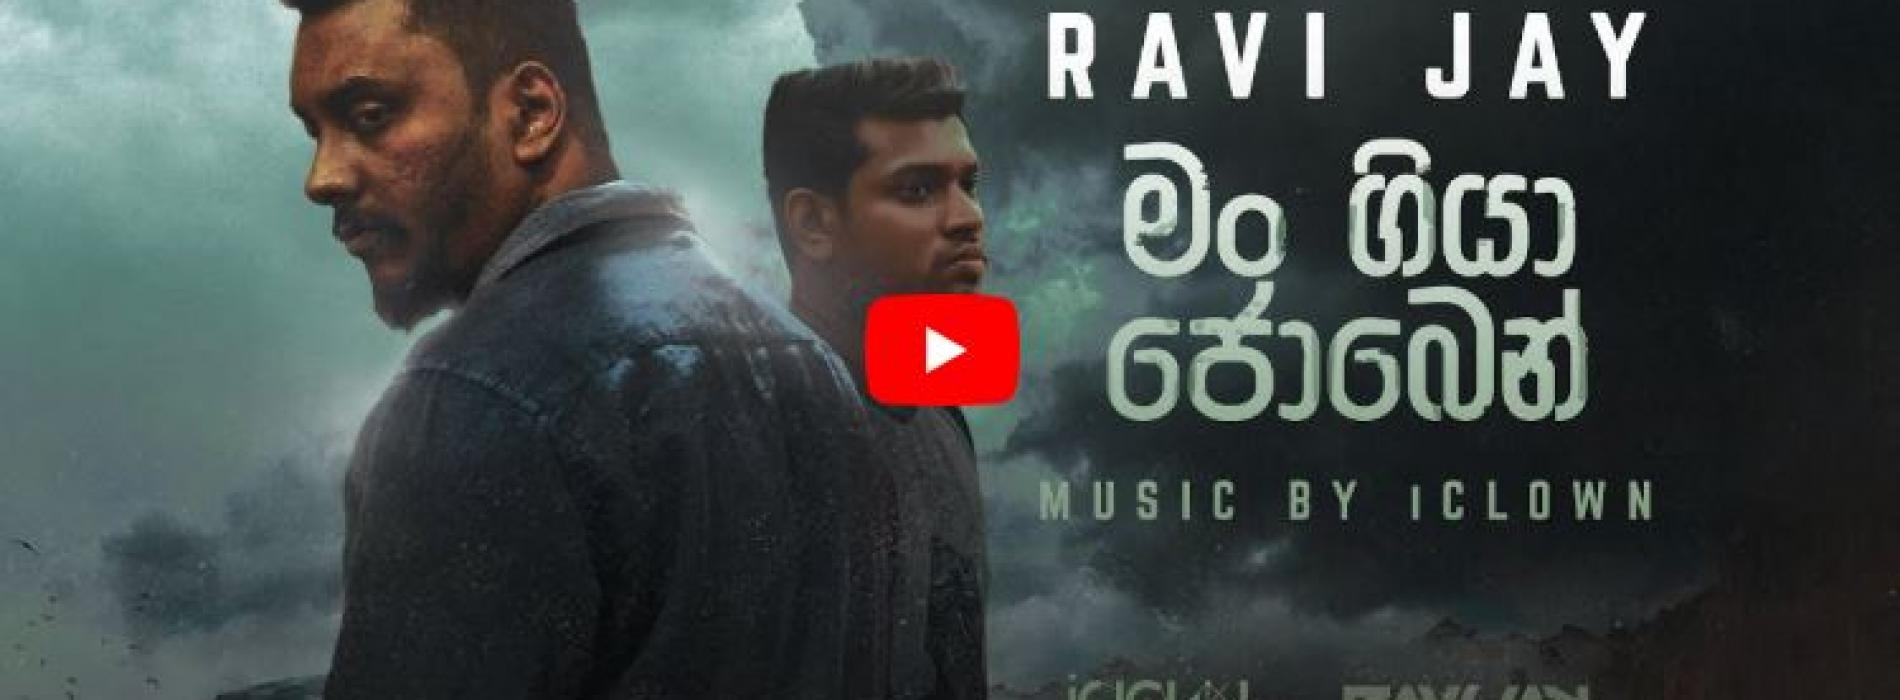 Ravi jay – මං ගියා ජොබෙන් (Man Giya Joben) ft iClown – Behind the scenes